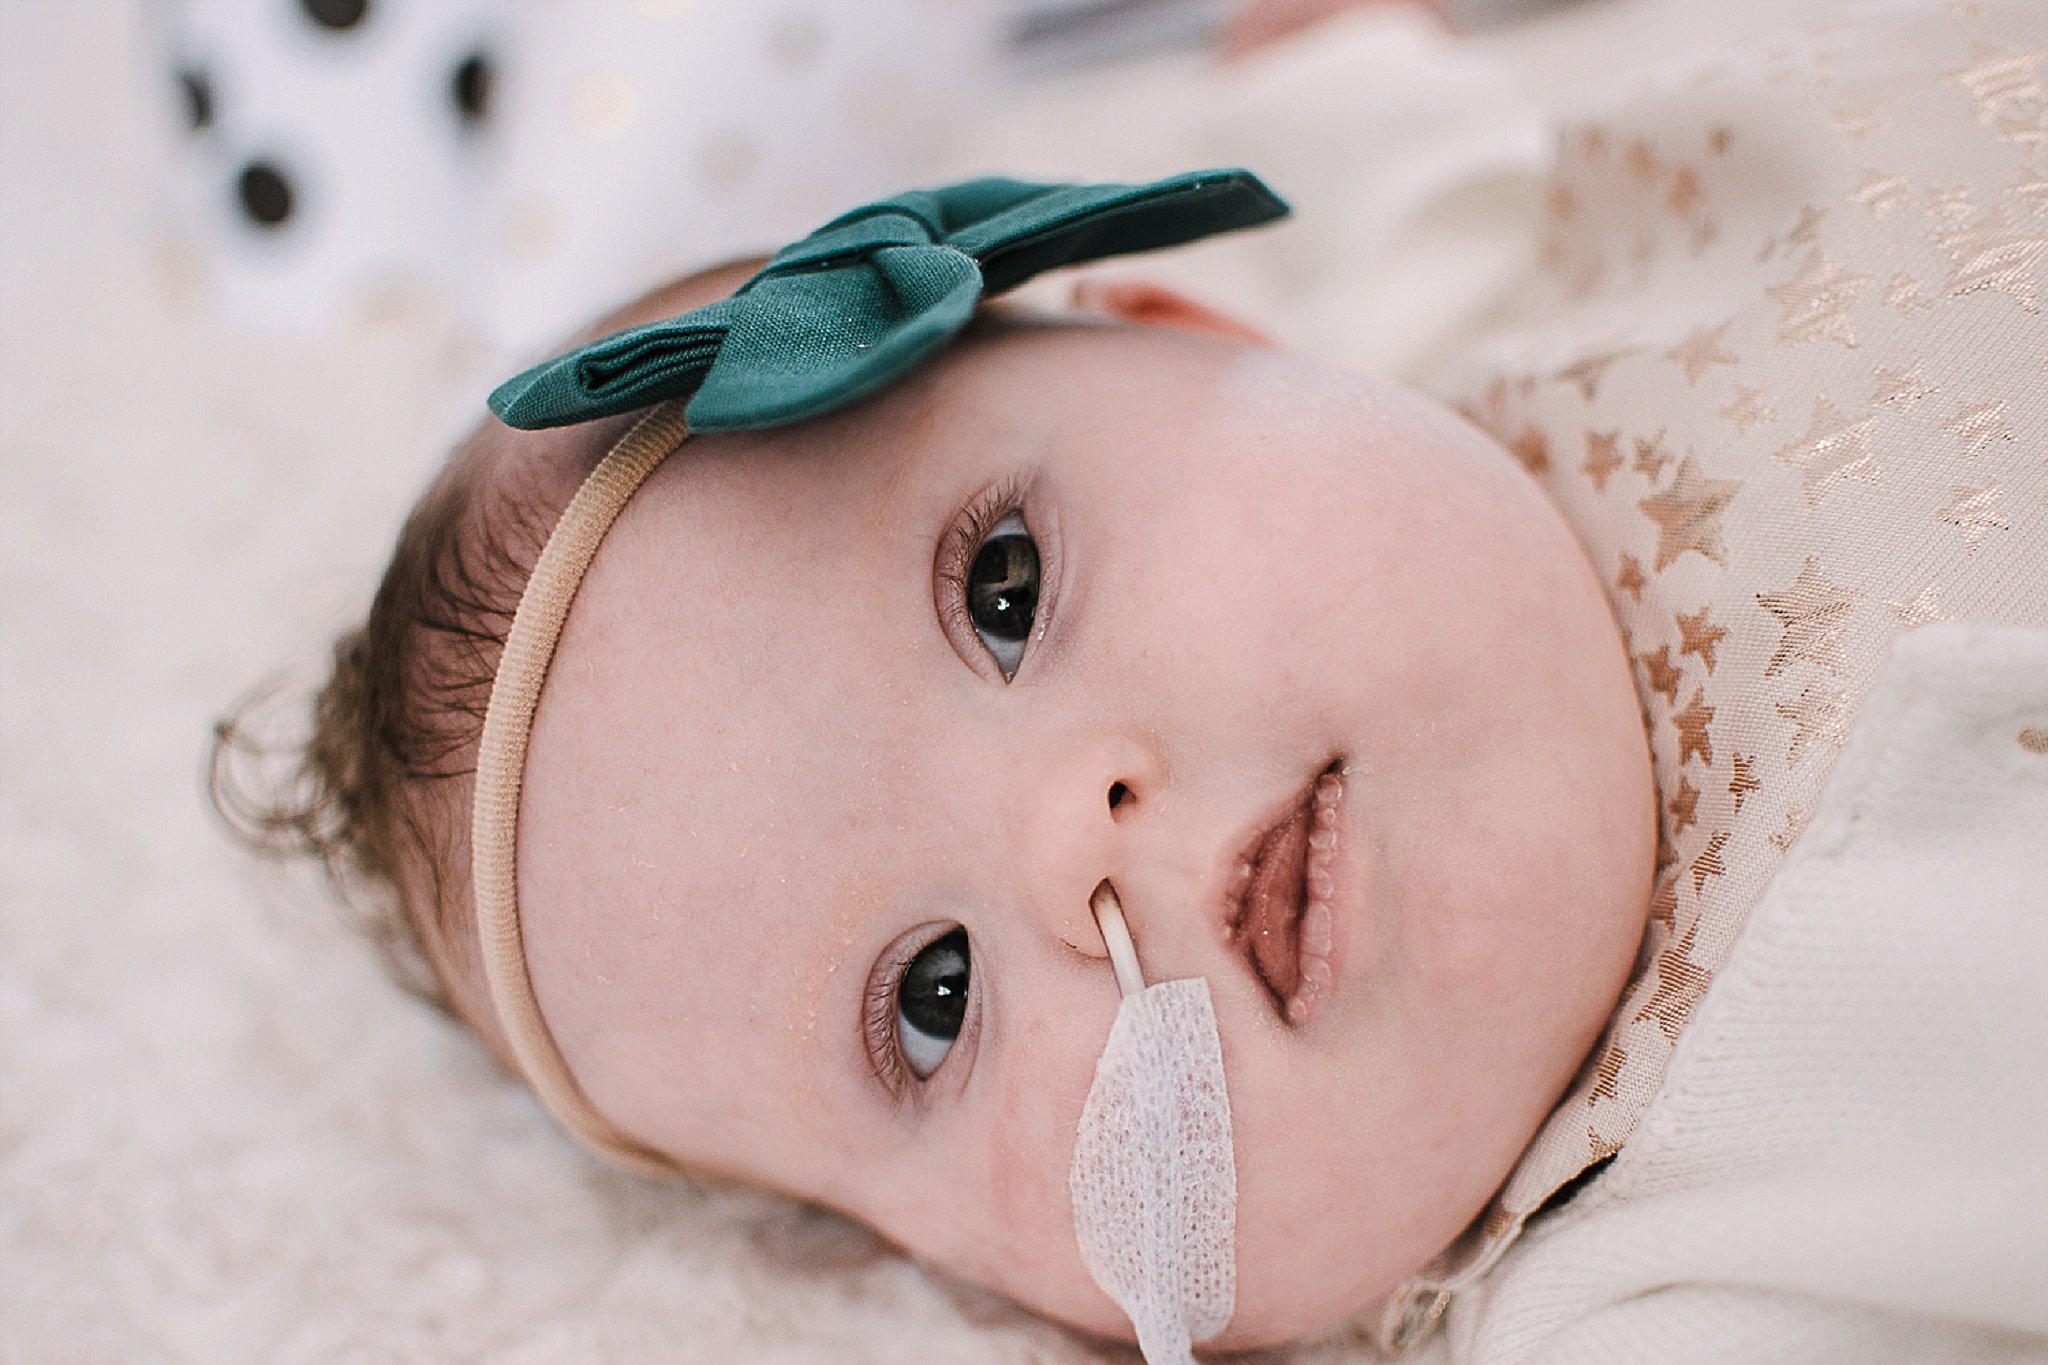 The hardest part about her being tube fed, is Reagan is growing more aware of having the tube in her nose. The last time we had to change it, she screamed for 30 minutes after. It used to be so easy to change her tube out, now it makes me cry. - Mandee Defee